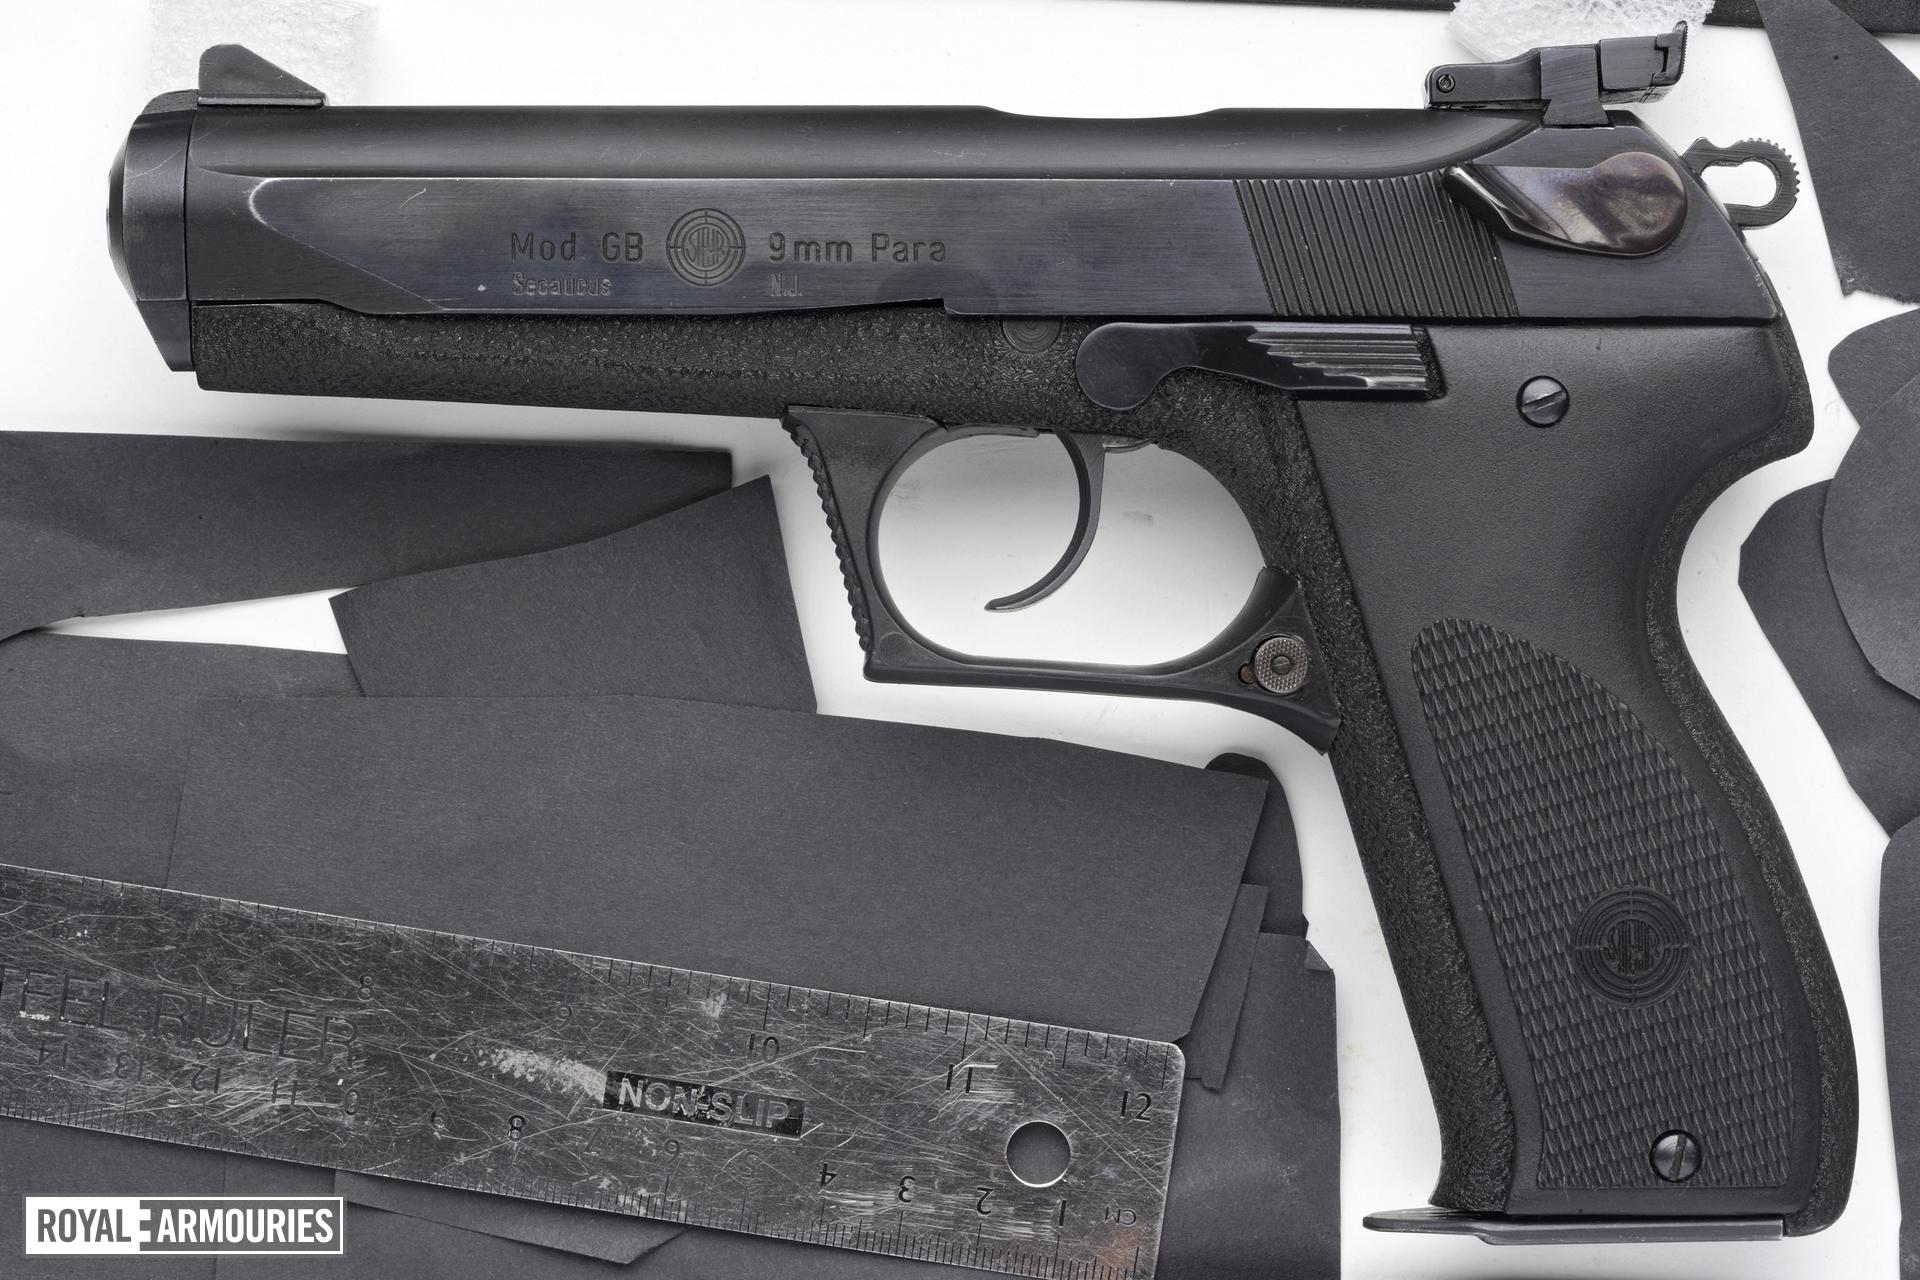 Centrefire self-loading pistol - Steyr Model GB